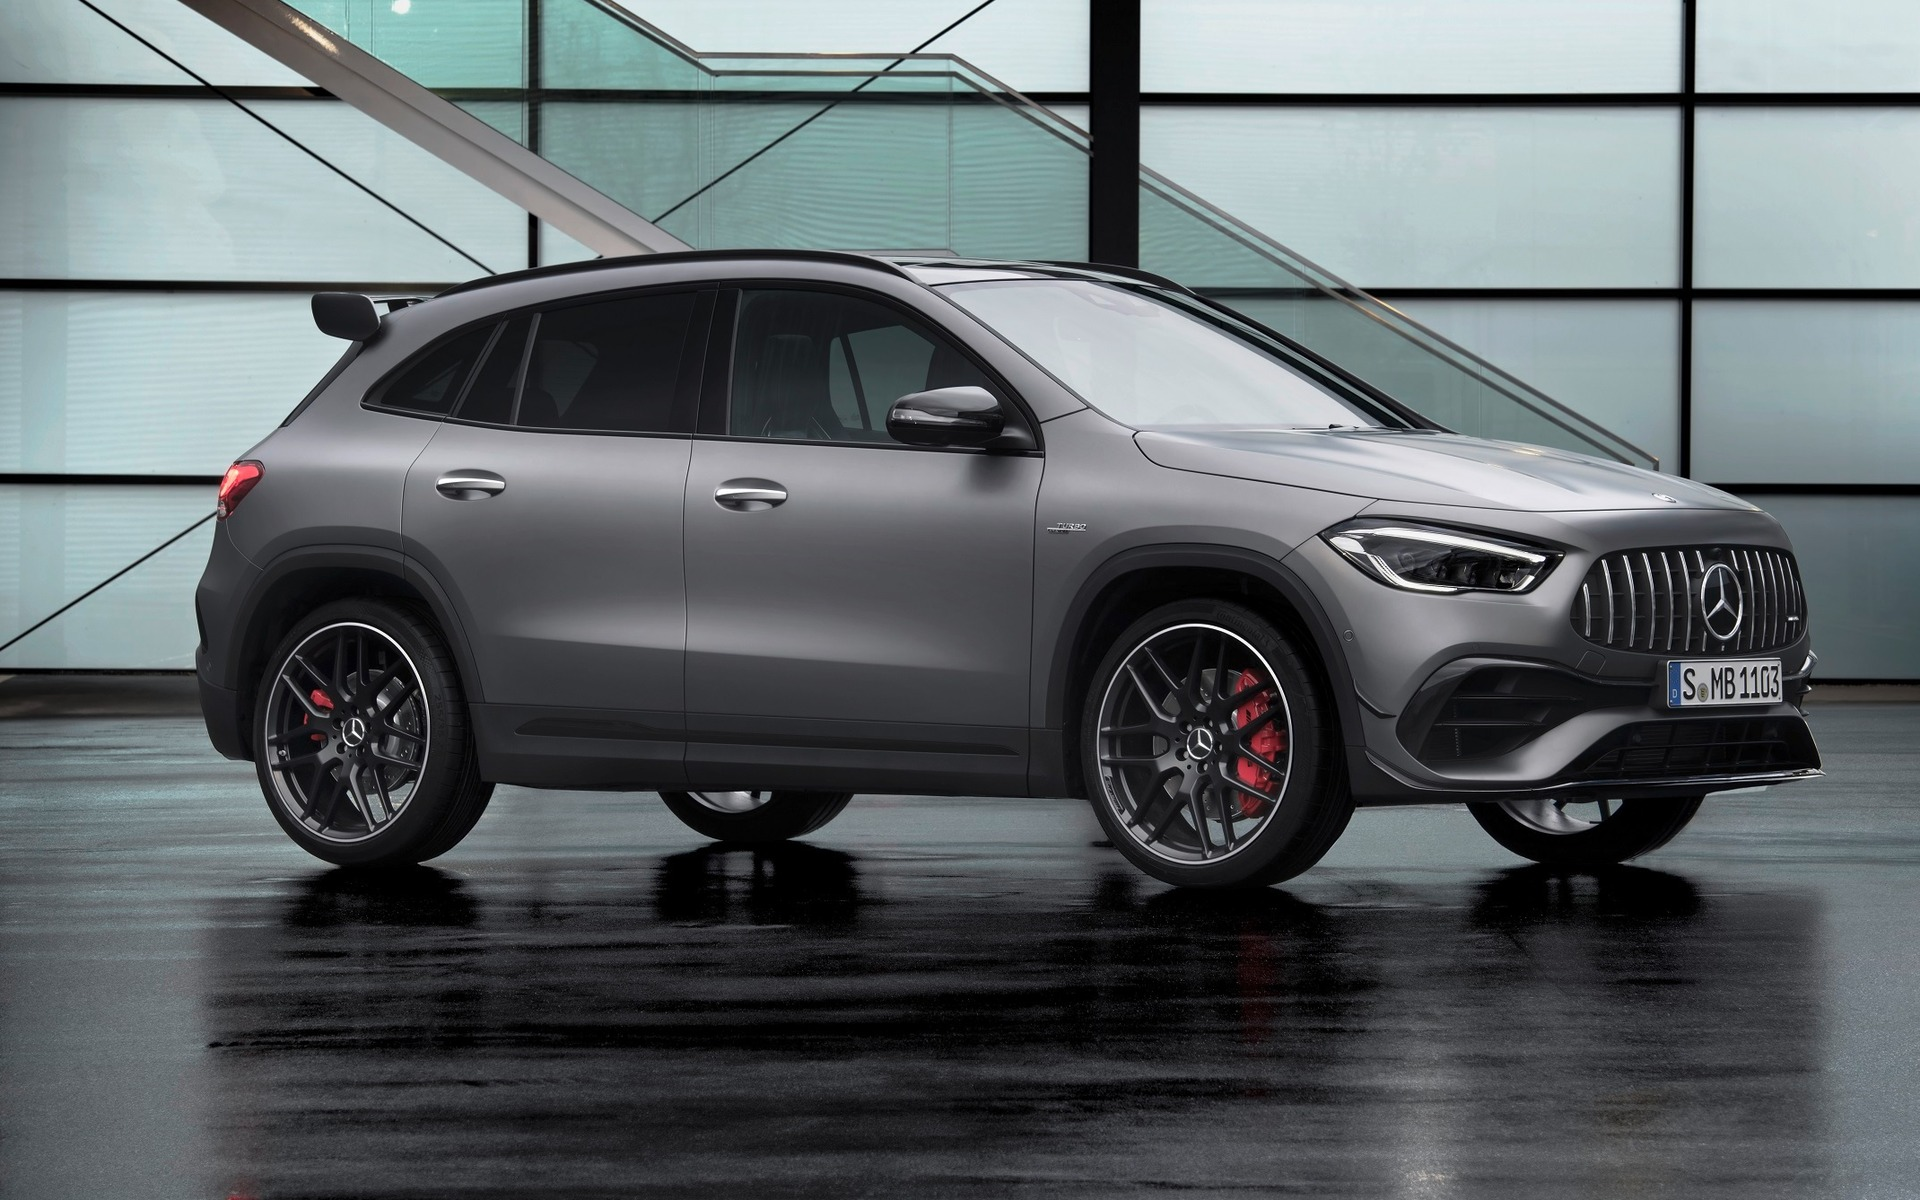 2021 mercedesamg gla 45 is back with a 382hp engine